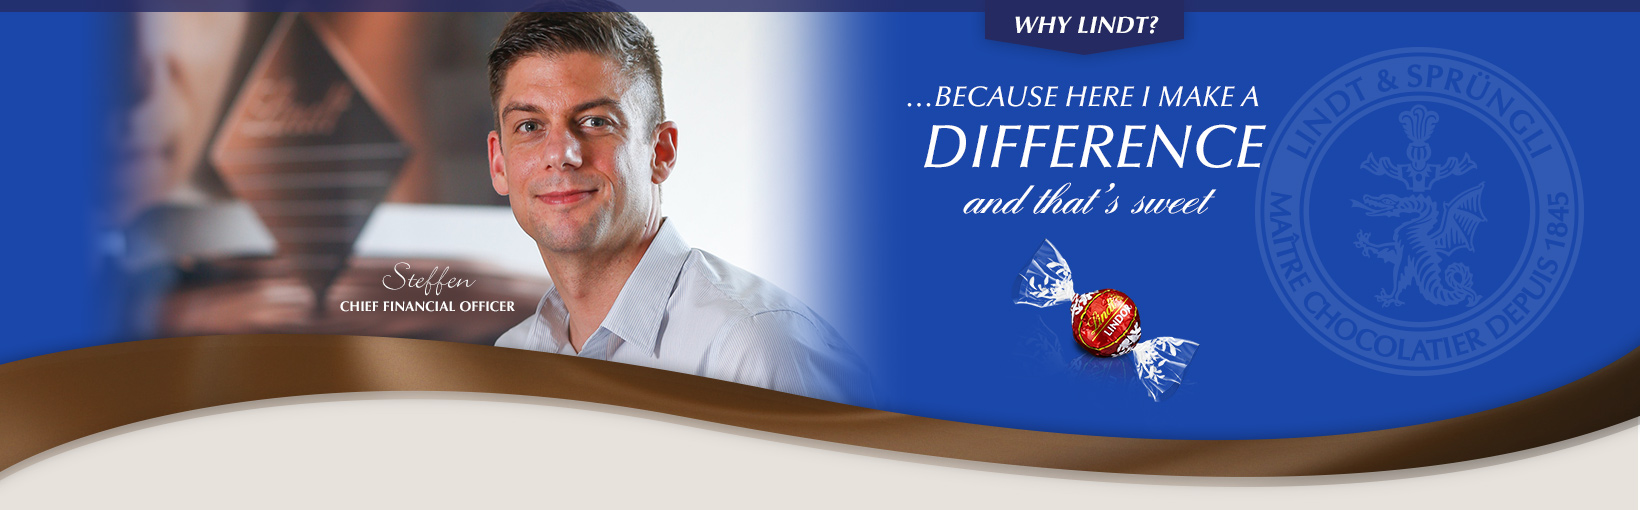 Why Lindt? …Because here I make a difference and that's sweet. Steffen